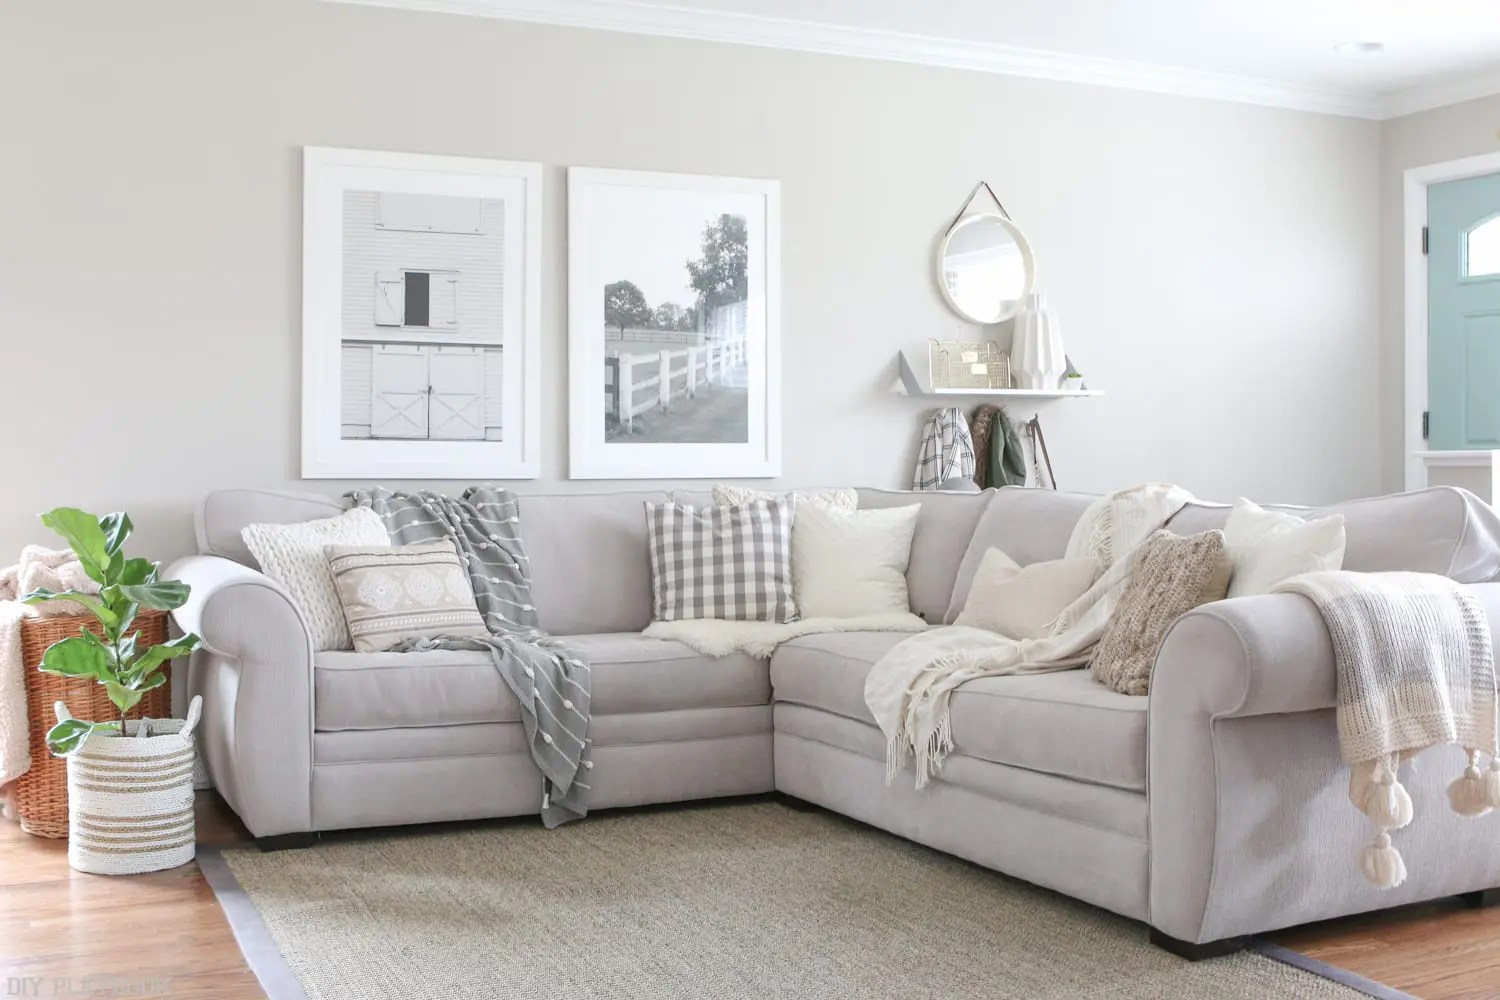 How To Choose Throw Pillows For A Gray Couch The Diy Playbook